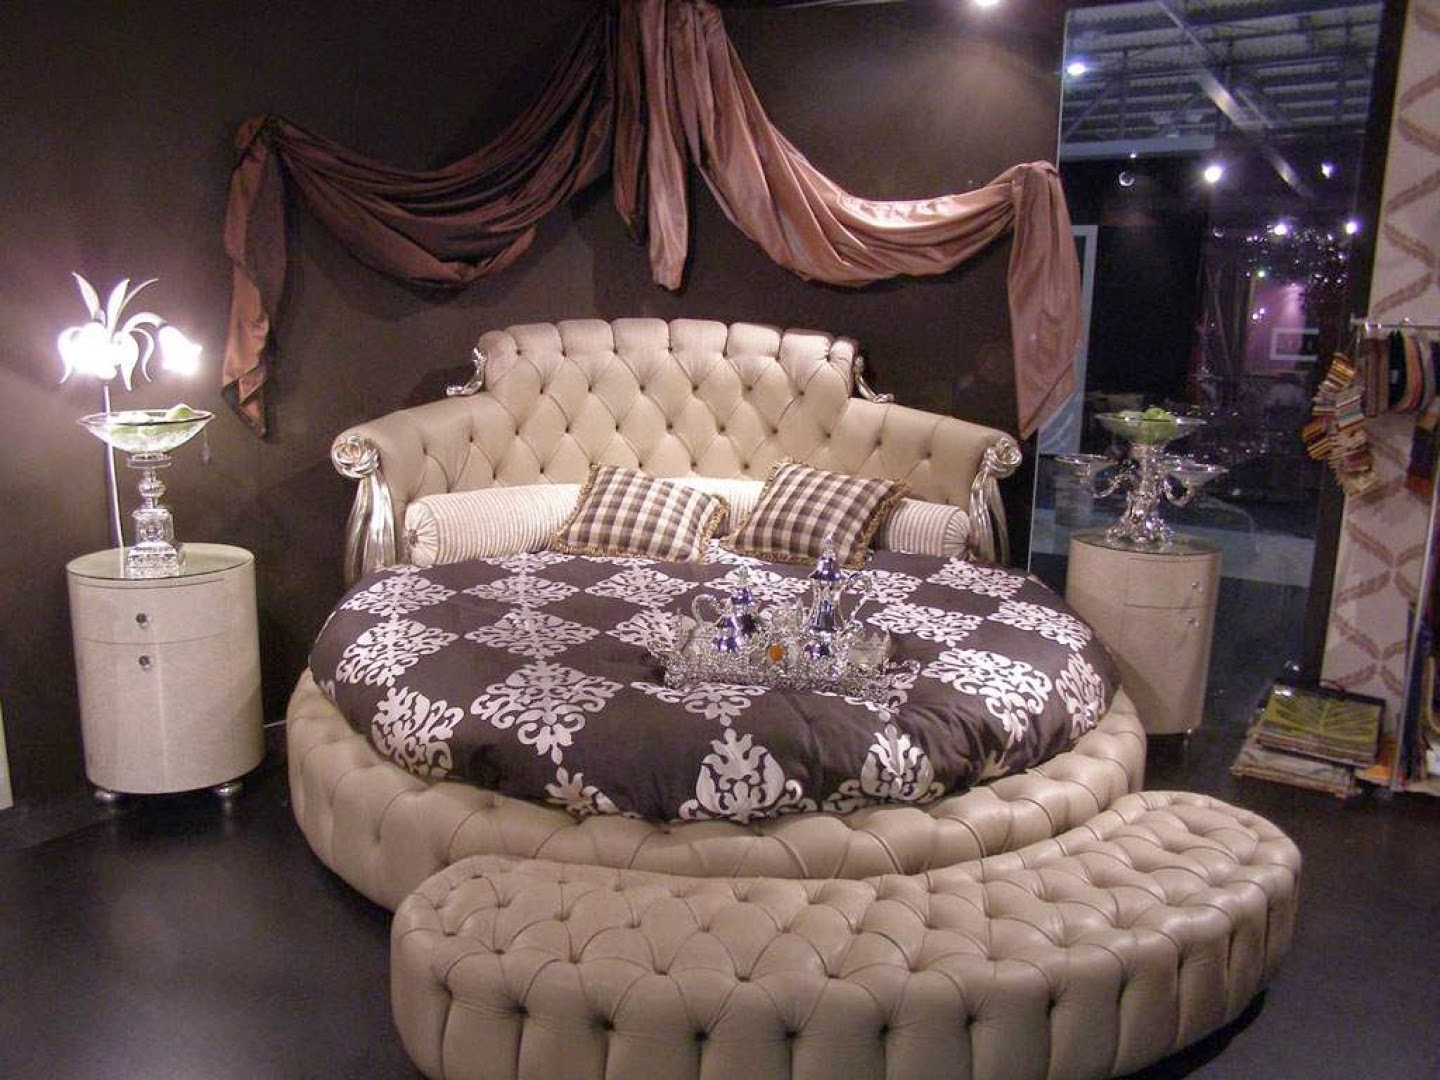 Genial Bedroom Design Ideas For Married Couples